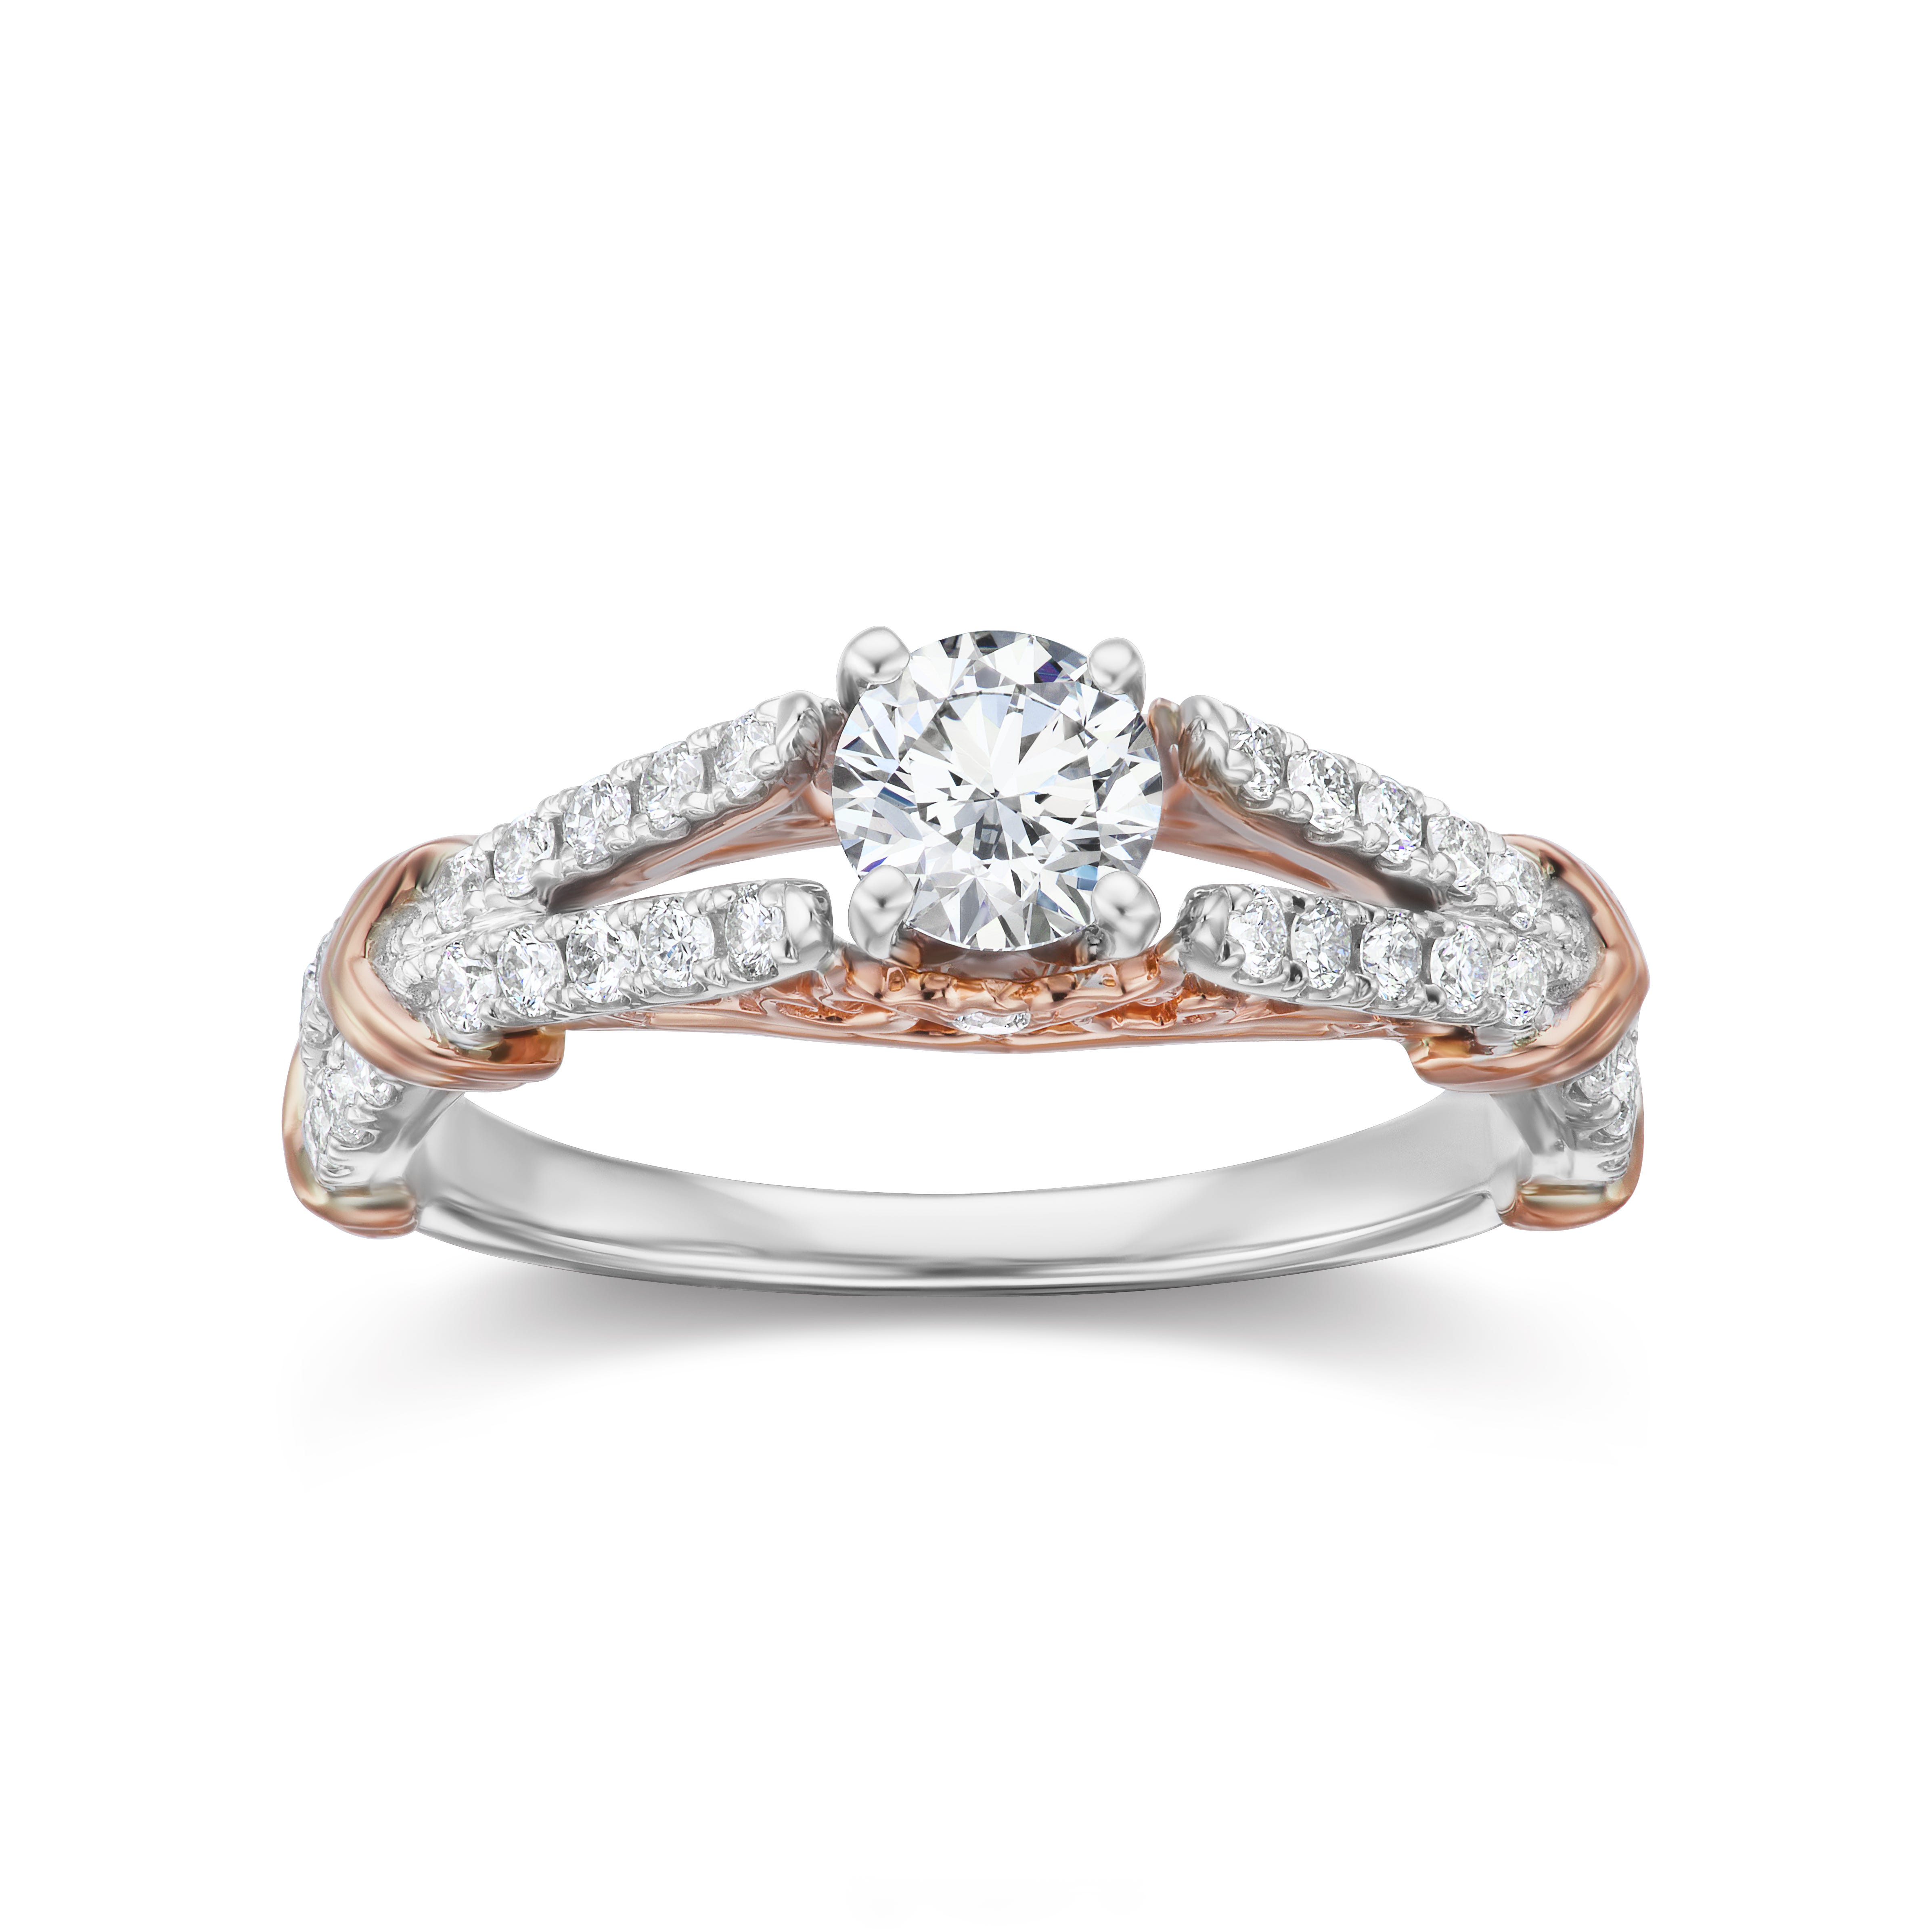 Lab-Crafted Split Shank Engagement Ring 1ctw. in 14k White & Rose Gold